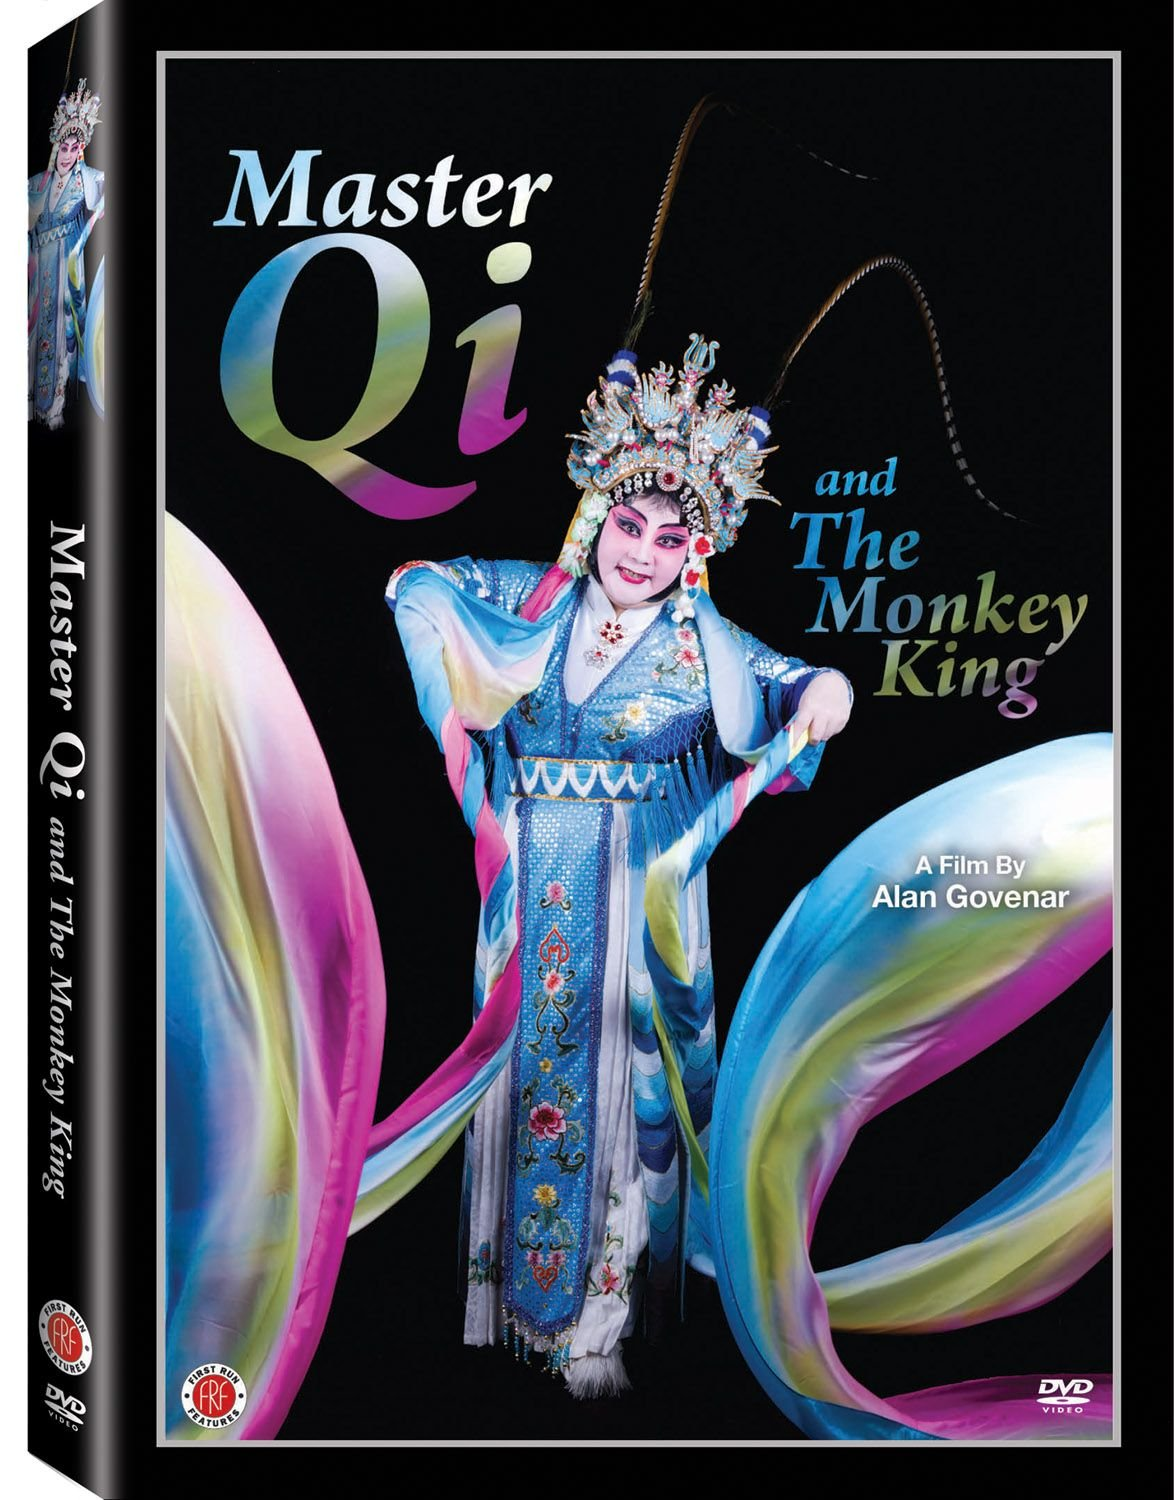 DVD : Ding Meikui - Master Qi And The Monkey King (Widescreen, Subtitled)